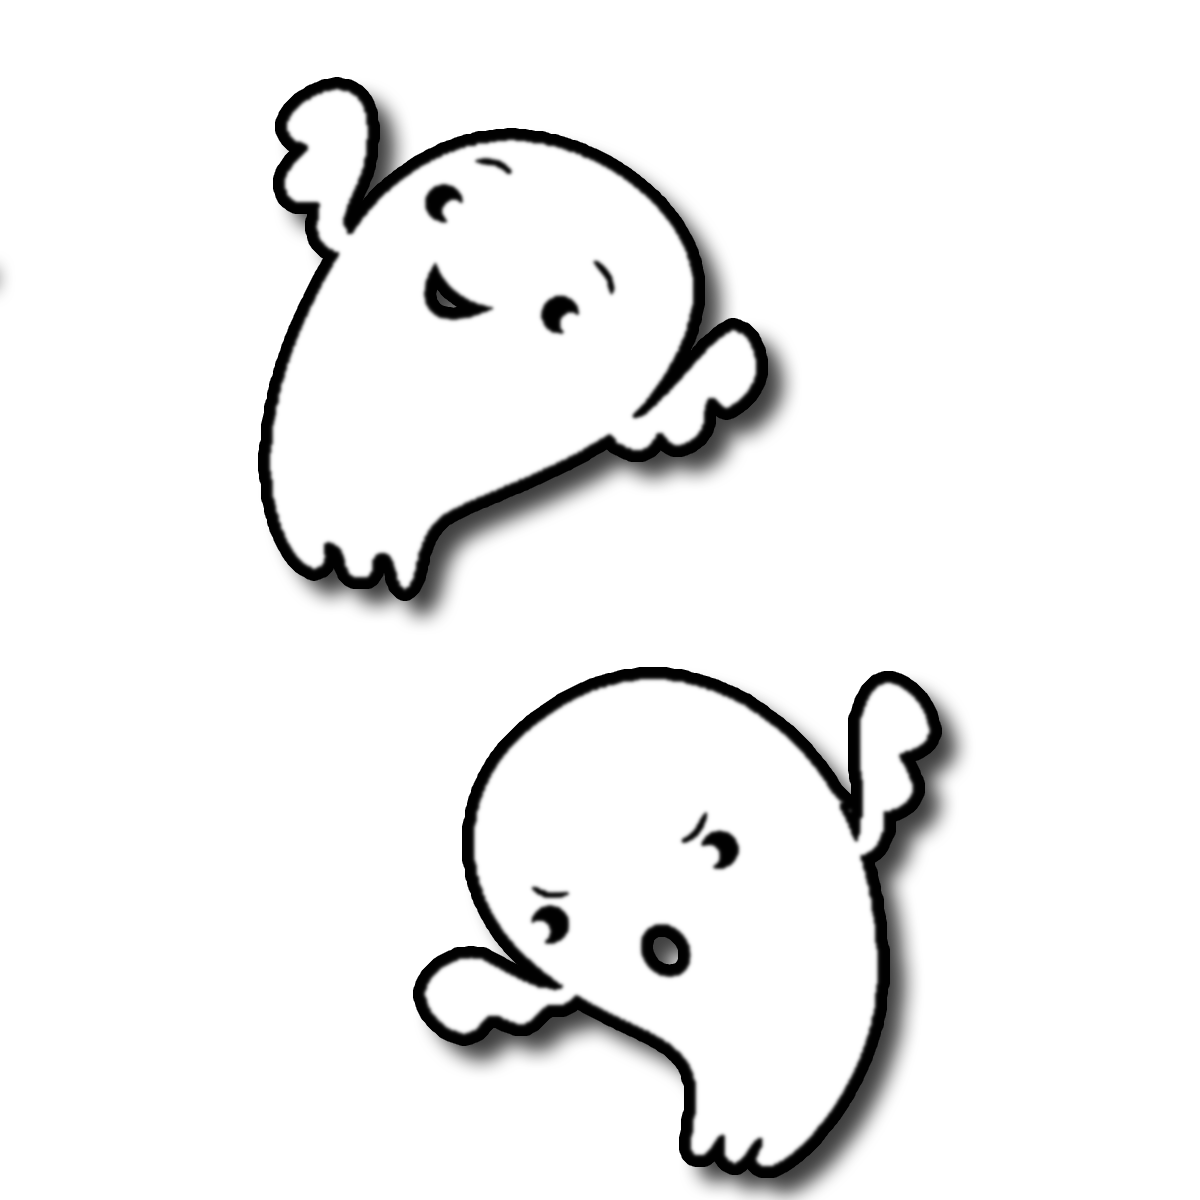 Phanom clipart happy ghost Ghost Clipart Clipart Panda Clipart